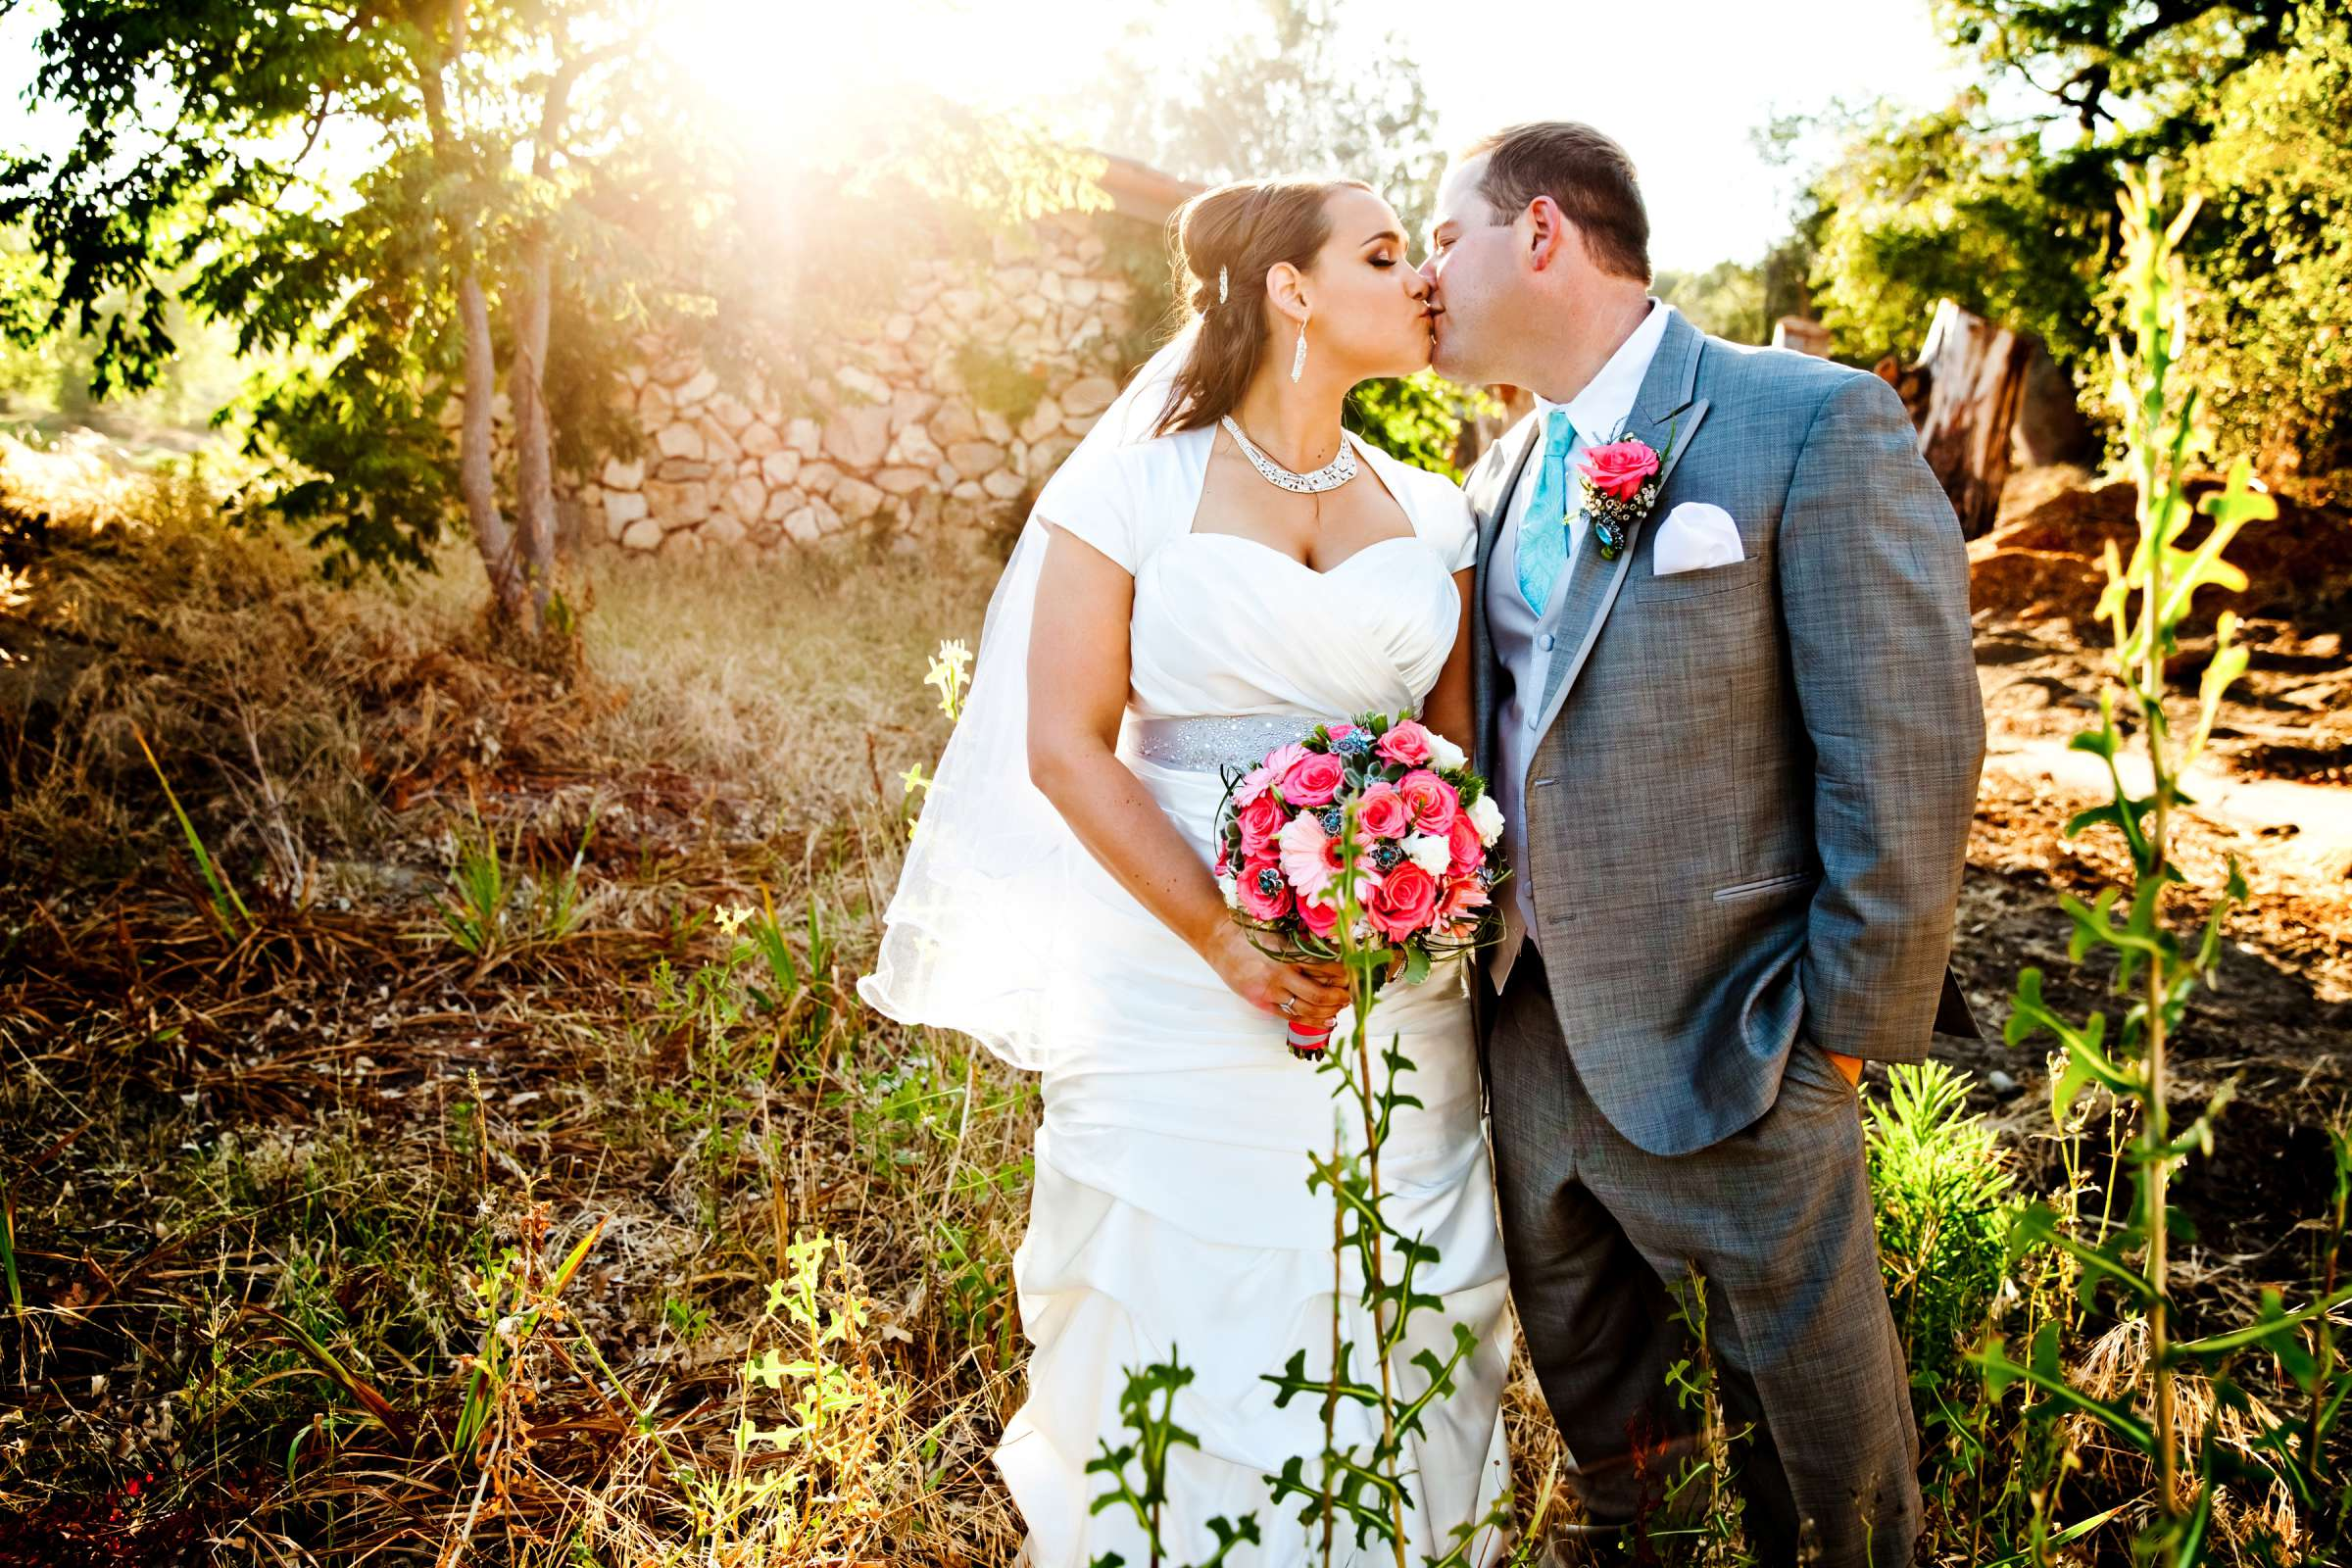 Mt Woodson Castle Wedding, Krista and Donald Wedding Photo #344661 by True Photography